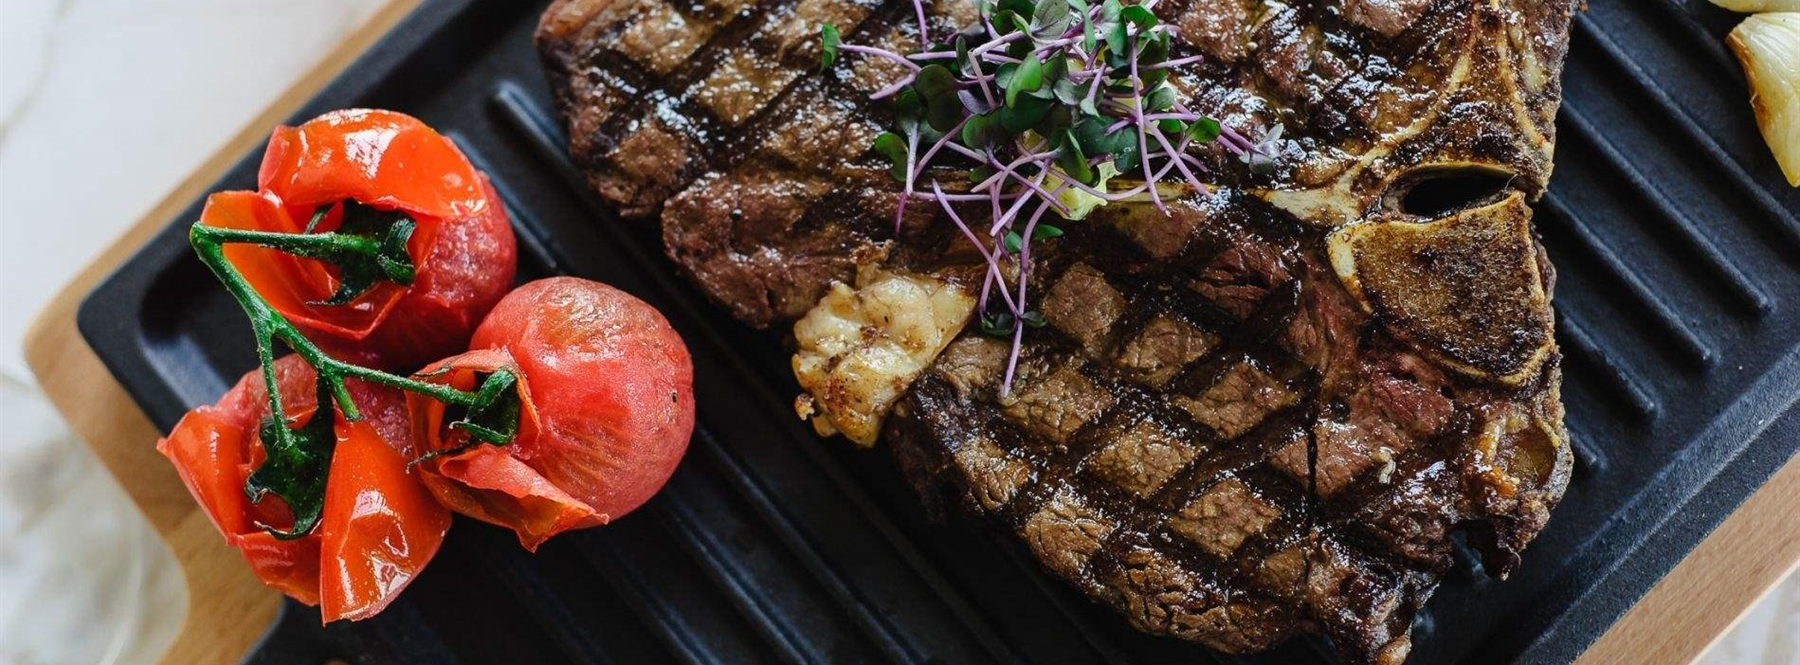 grill beef